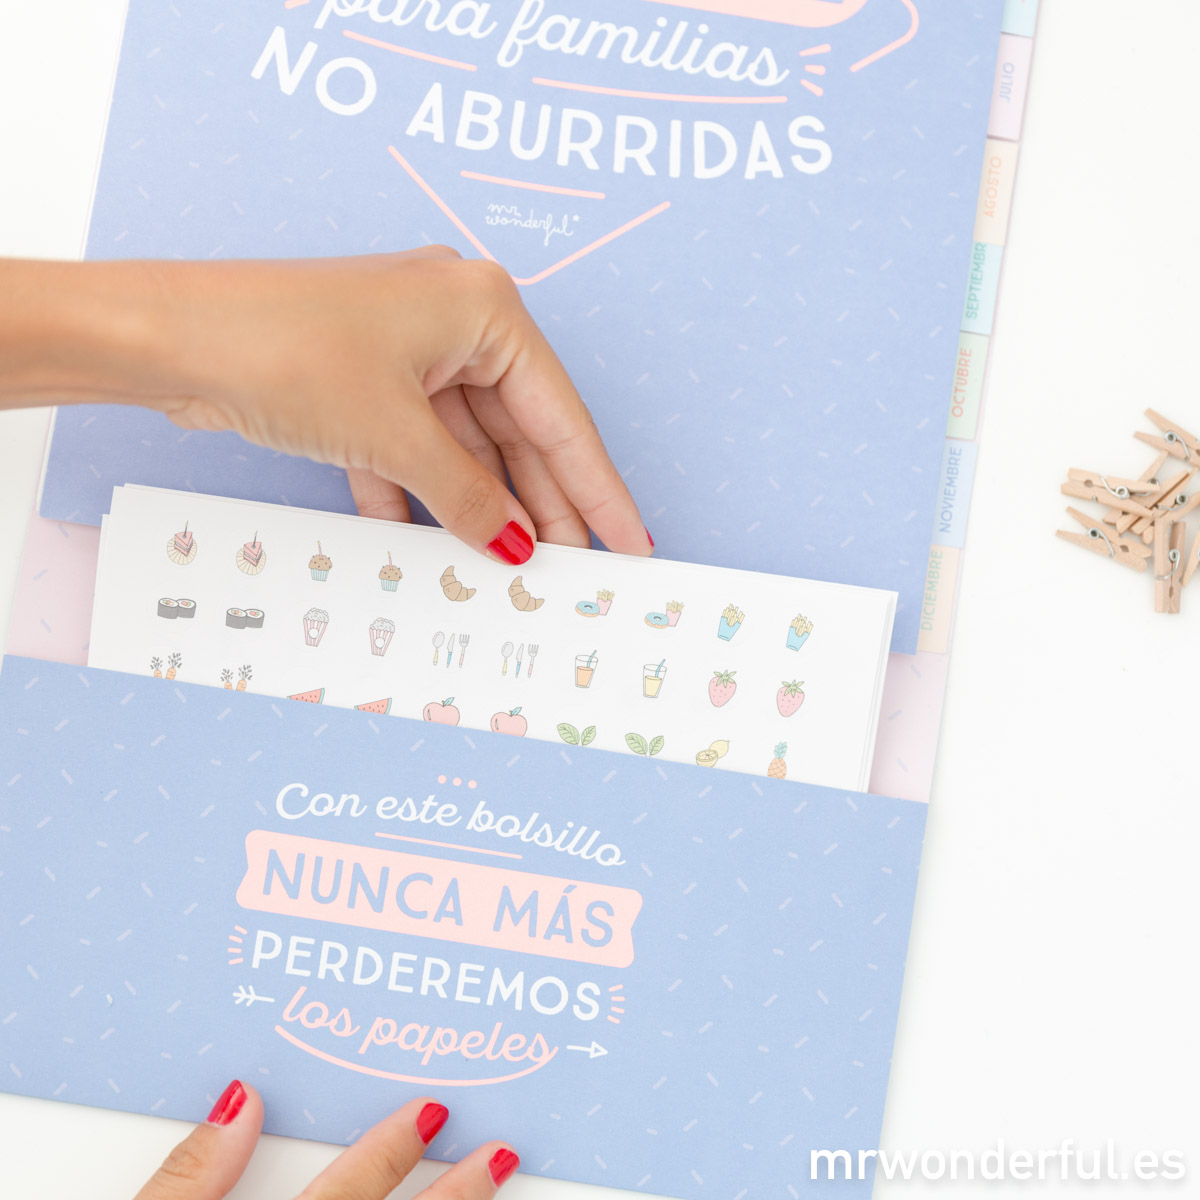 mrwonderful_8435460708364_WOA03742ES_Calendario-familiar-2017-Un-calendario-genial-para_ES-11